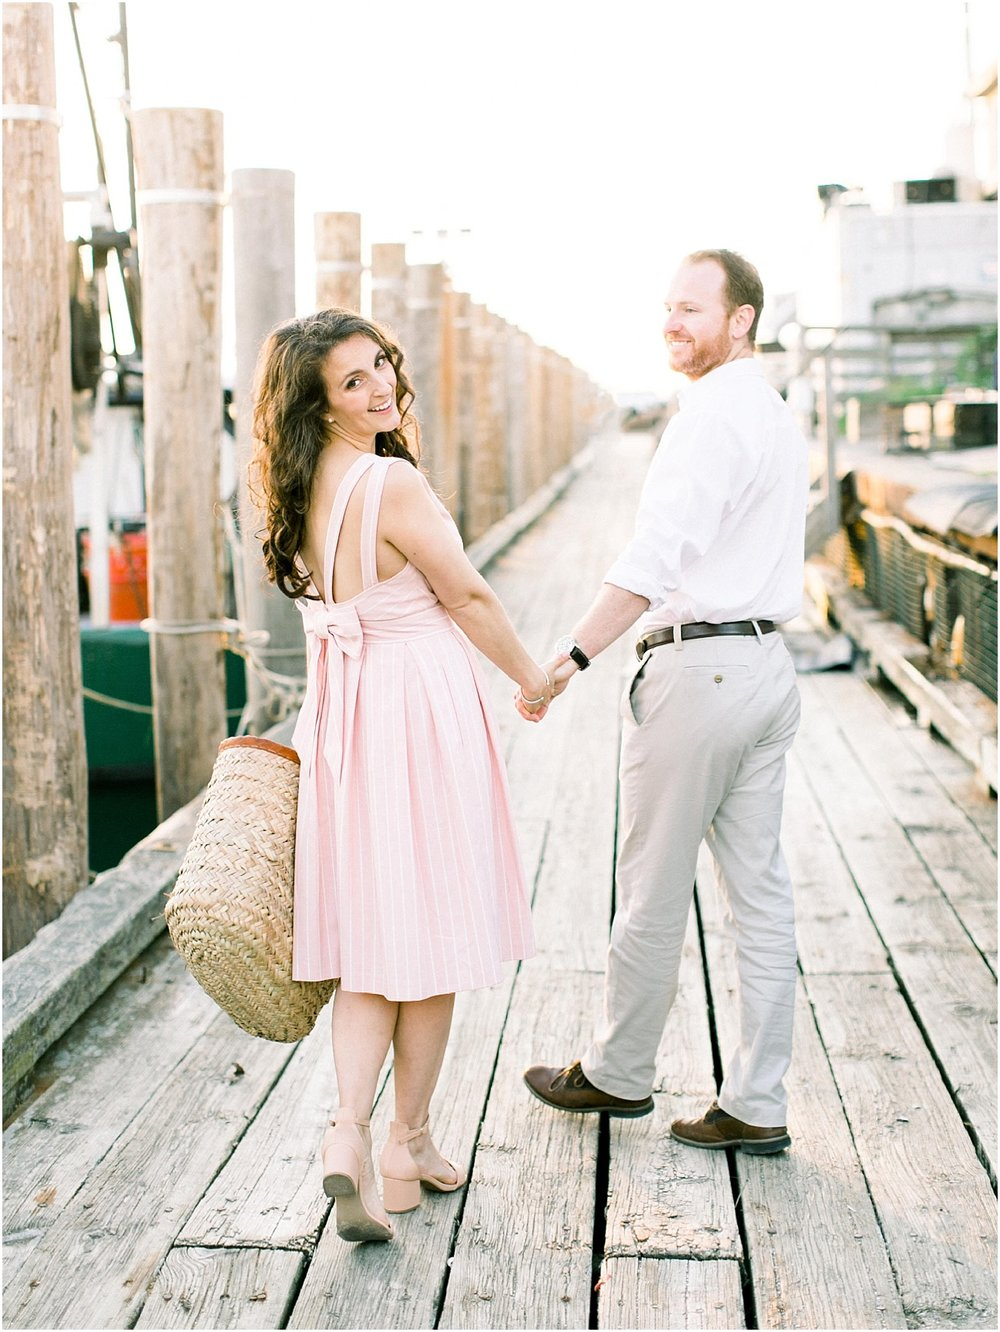 love_and_light_photographs_meredith_chris_engagement_martha_vineyard_marthas_nancys_cape_cod_boston_wedding_photographer_meredith_jane_photography_photo_0448.jpg